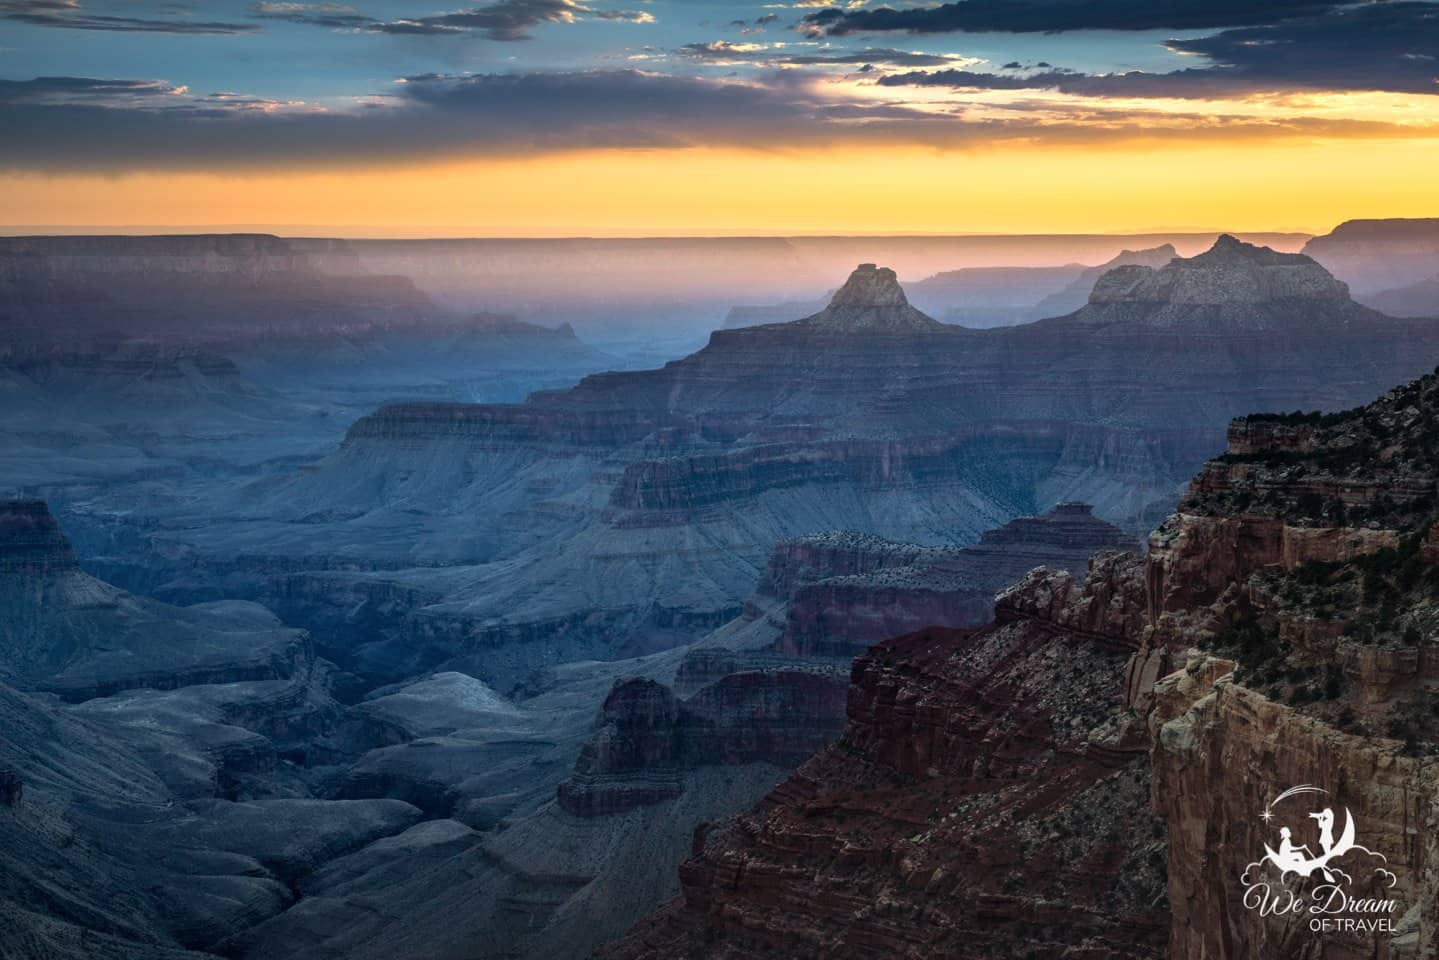 Photographing the changing color palette of the Grand Canyon at sunset from Cape Royal.